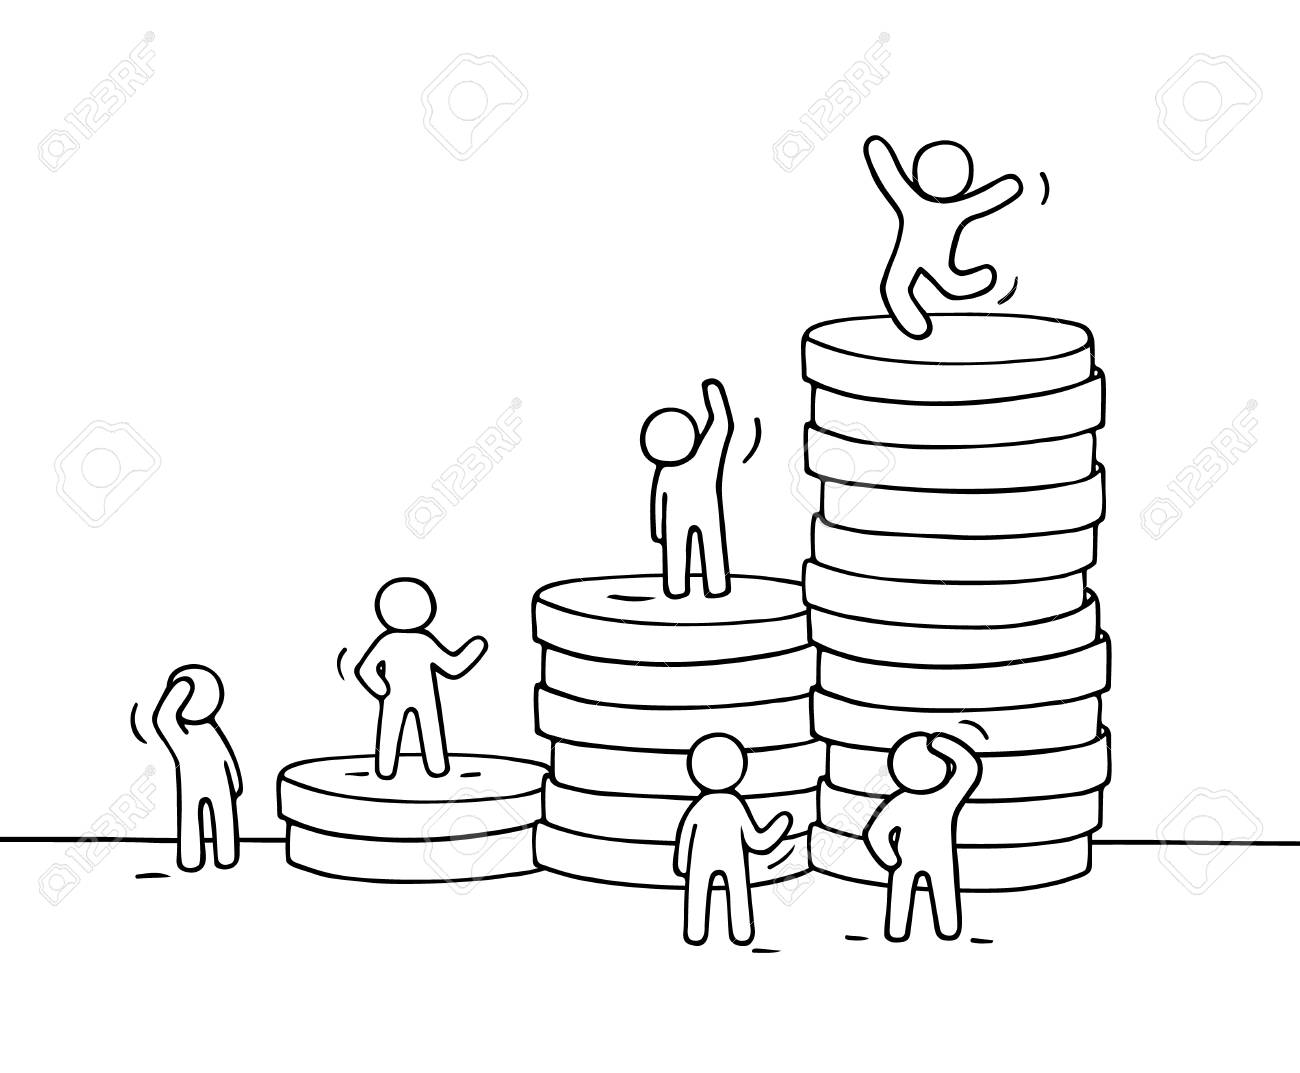 1300x1073 Sketch Of Working Little People With Stack Of Coins. Doodle Cute